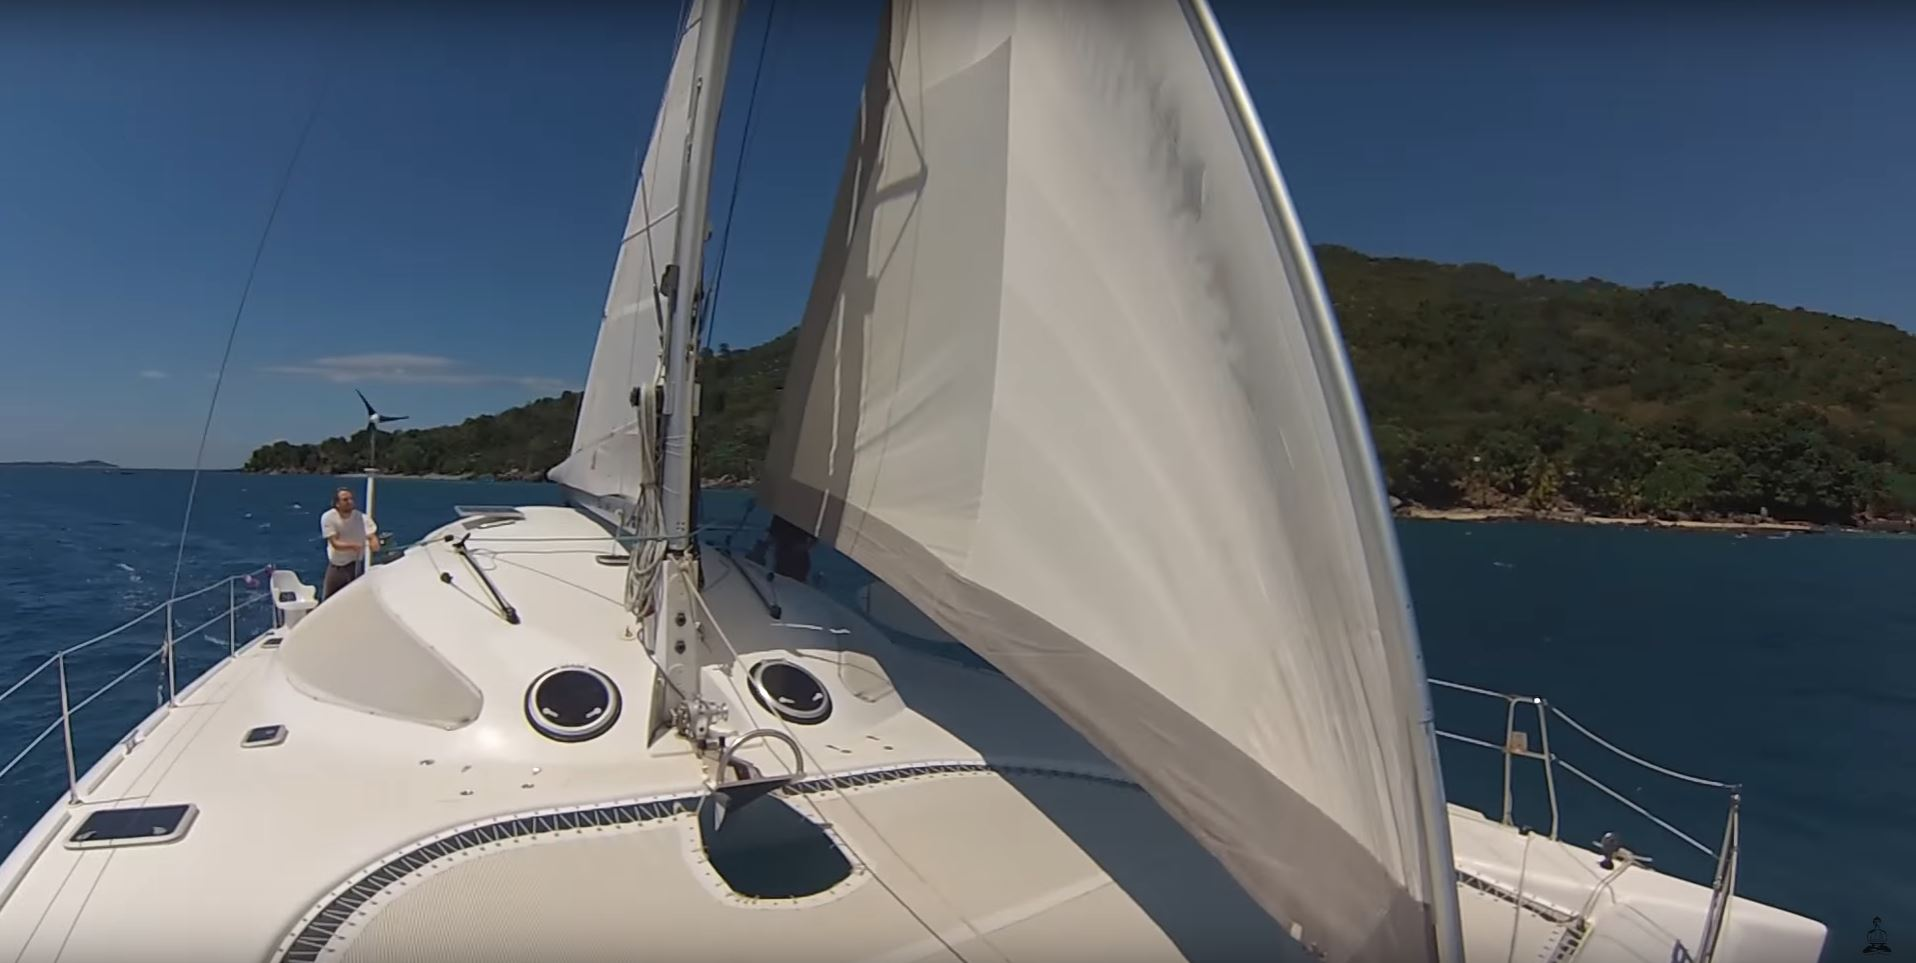 catamarans vs monohull which is faster